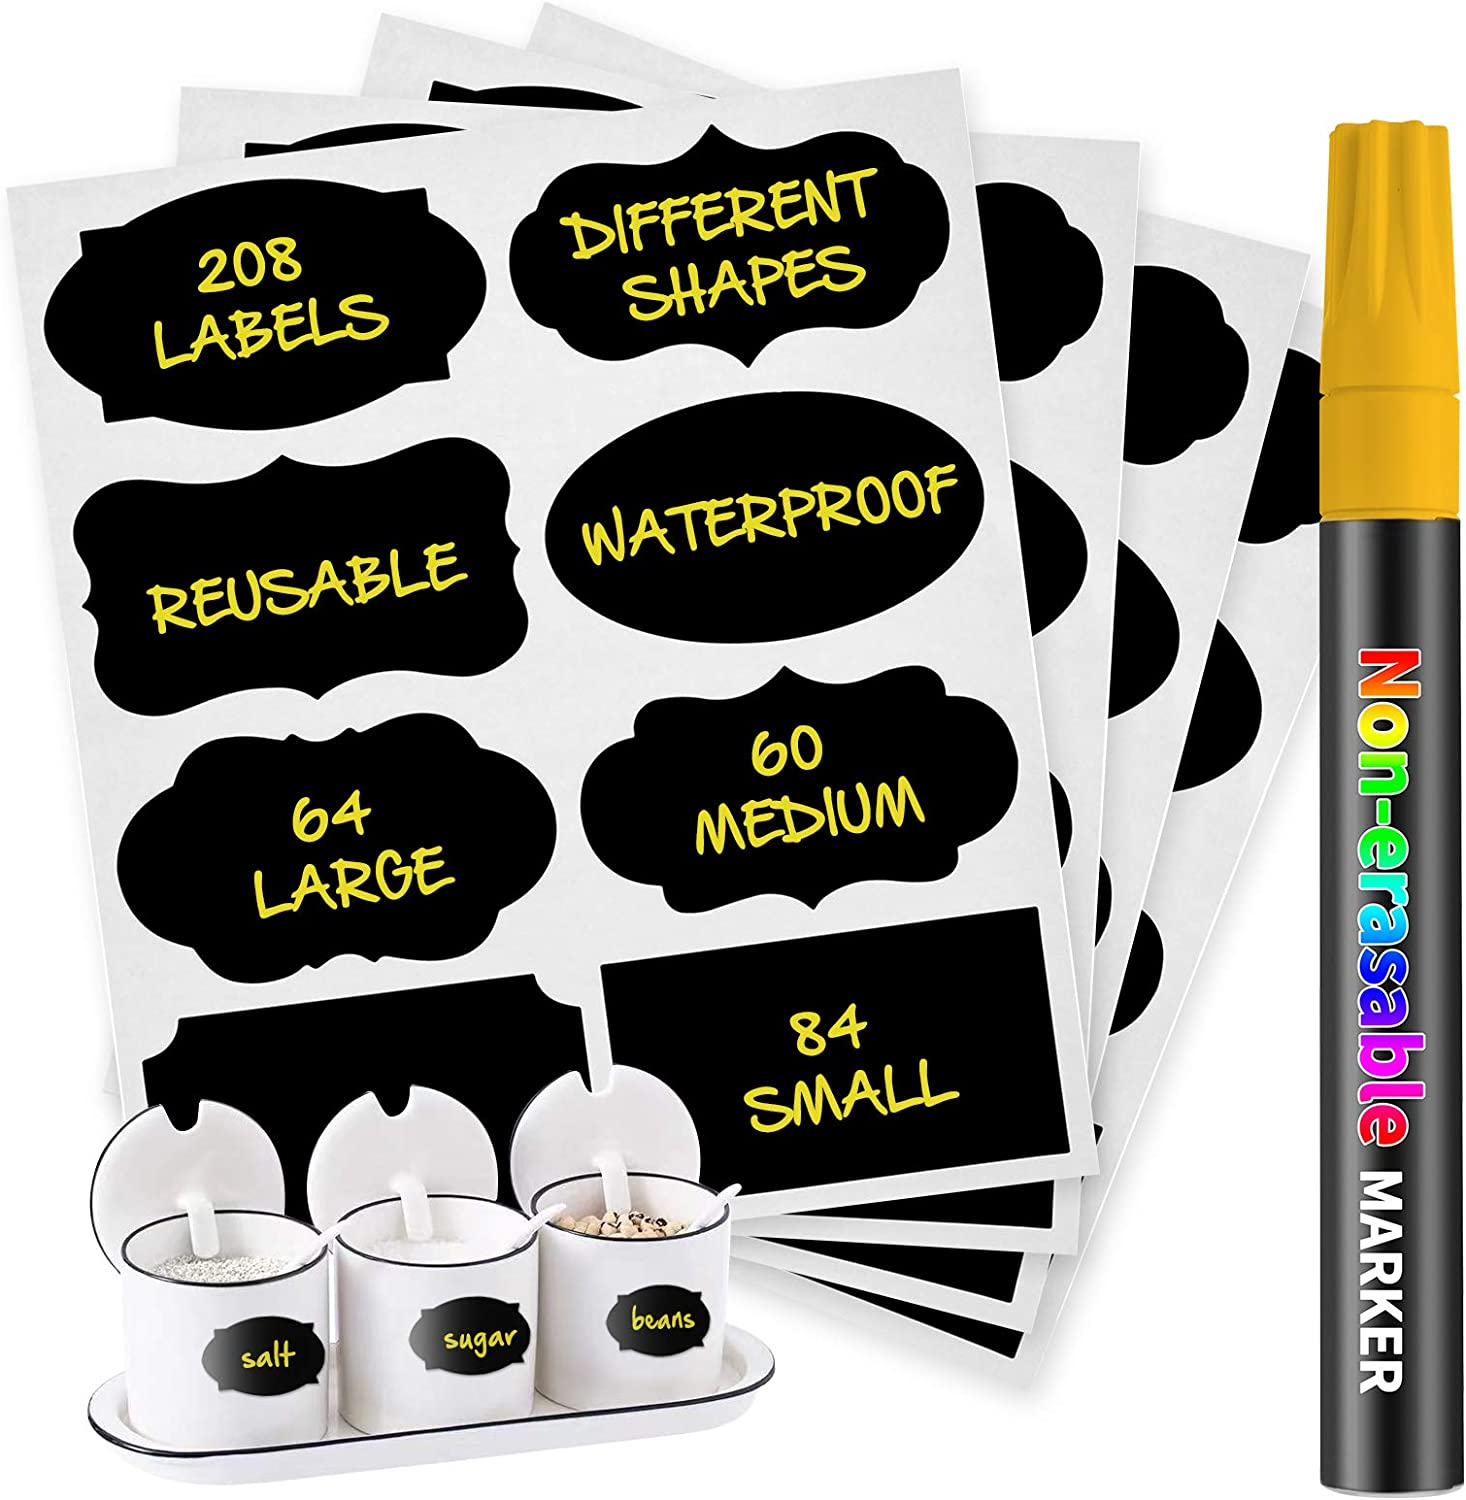 208PCS Chalkboard Labels Stickers, Waterproof Removable Decorative Premium Label Sticker with Chalk Marker for Pantry,Bottles,Mason Jars,Containers, Organize Kitchen&Office (Yellow Marker)